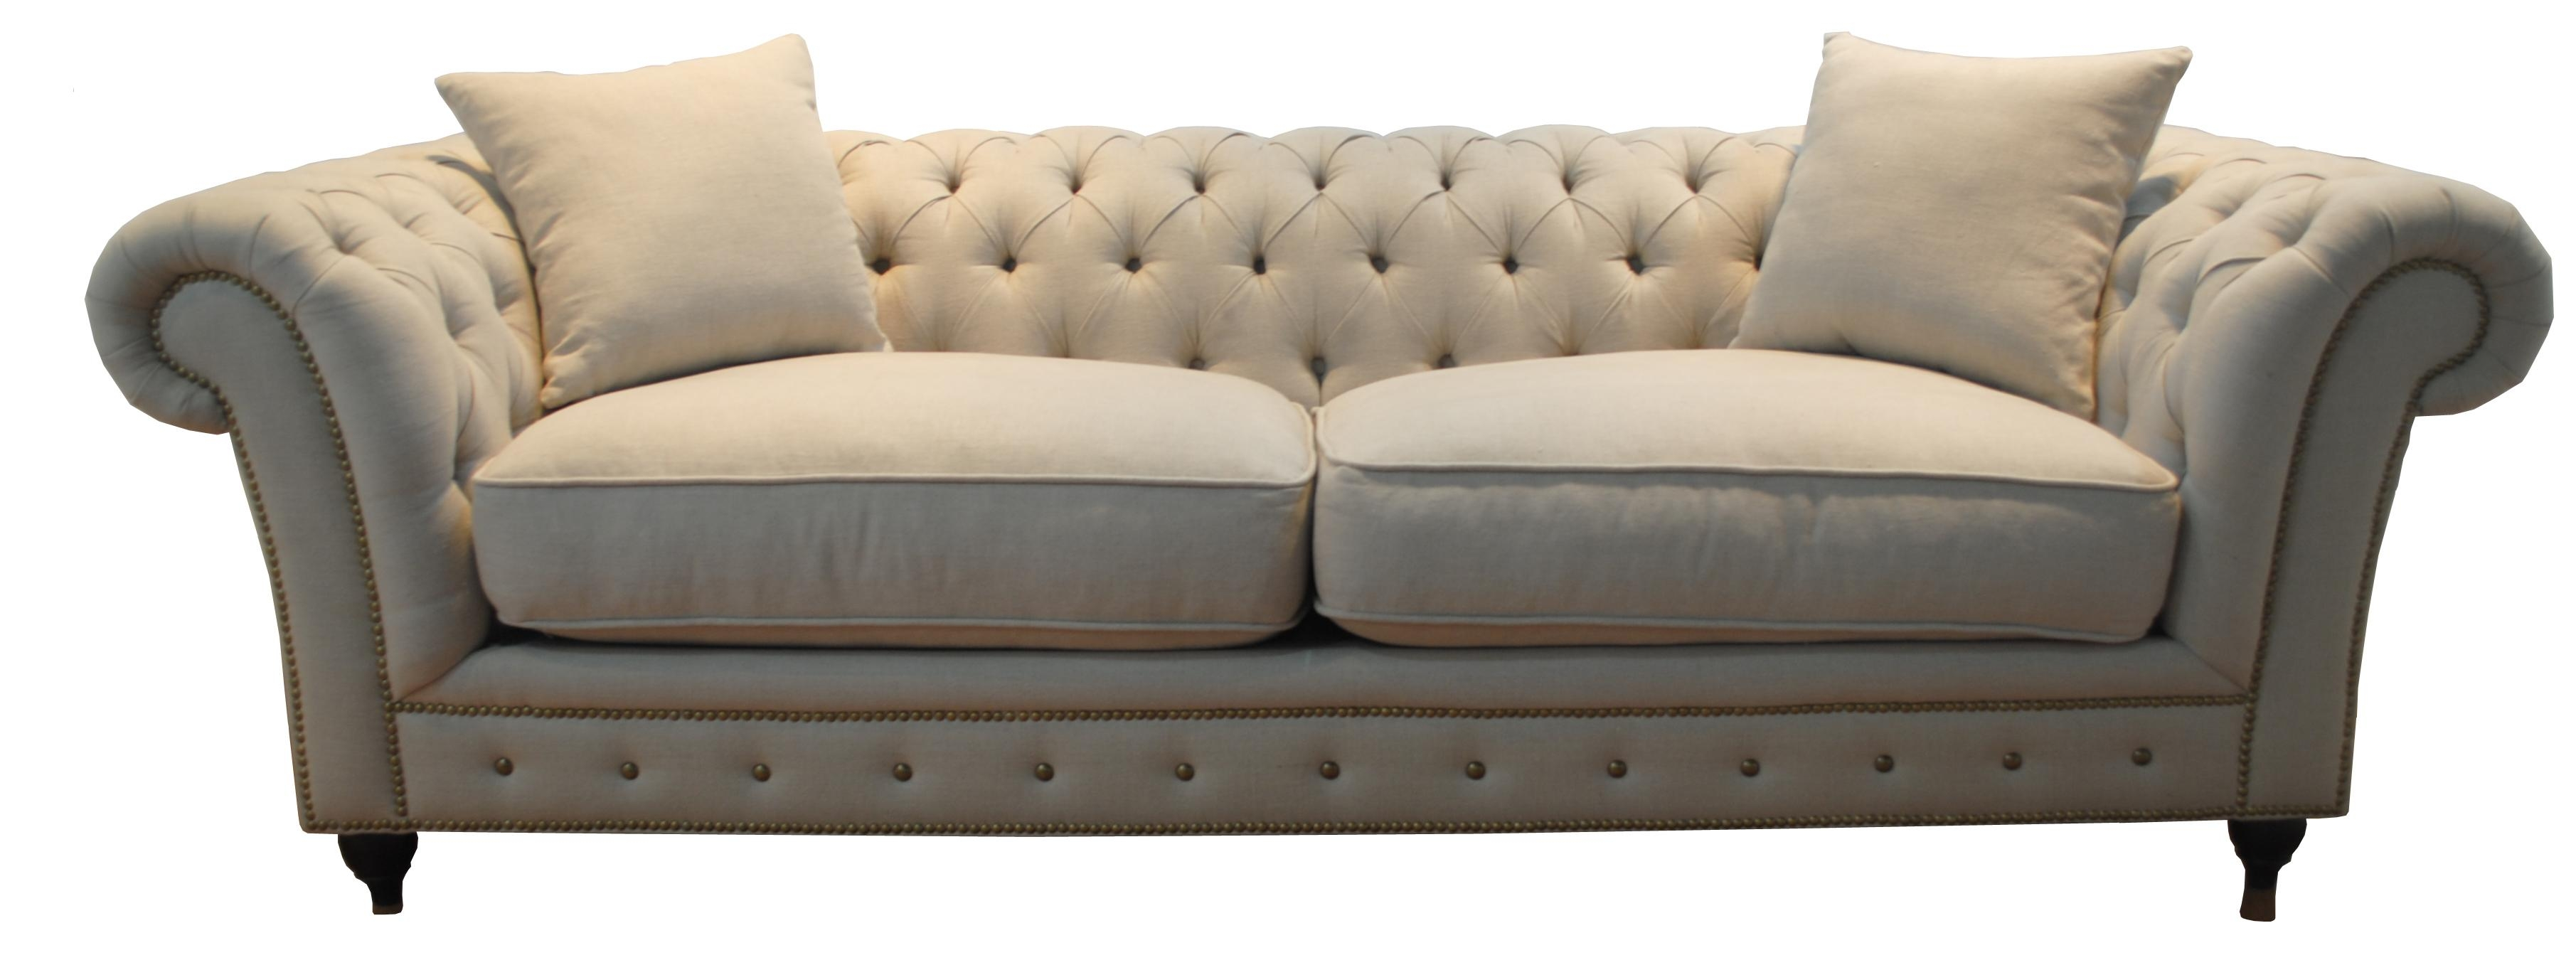 french sofas and chairs leather upholstery houston 20 ideas of style sofa